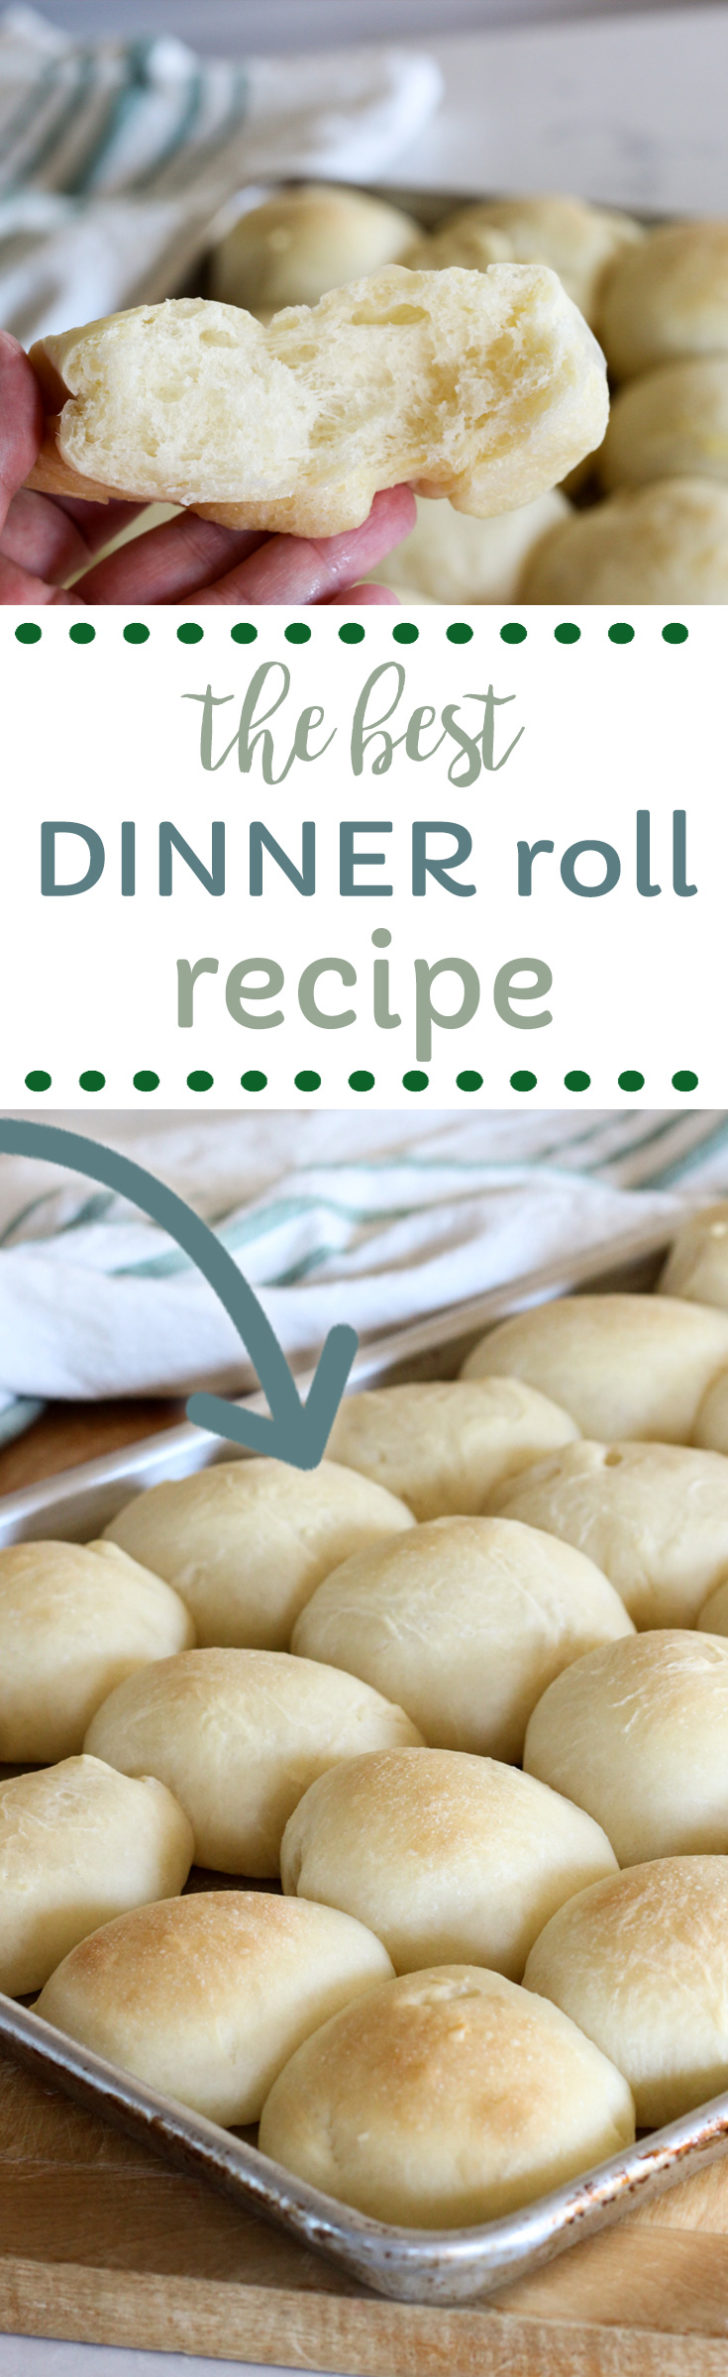 The best dinner roll recipe.  The dough is made in the bread machine.